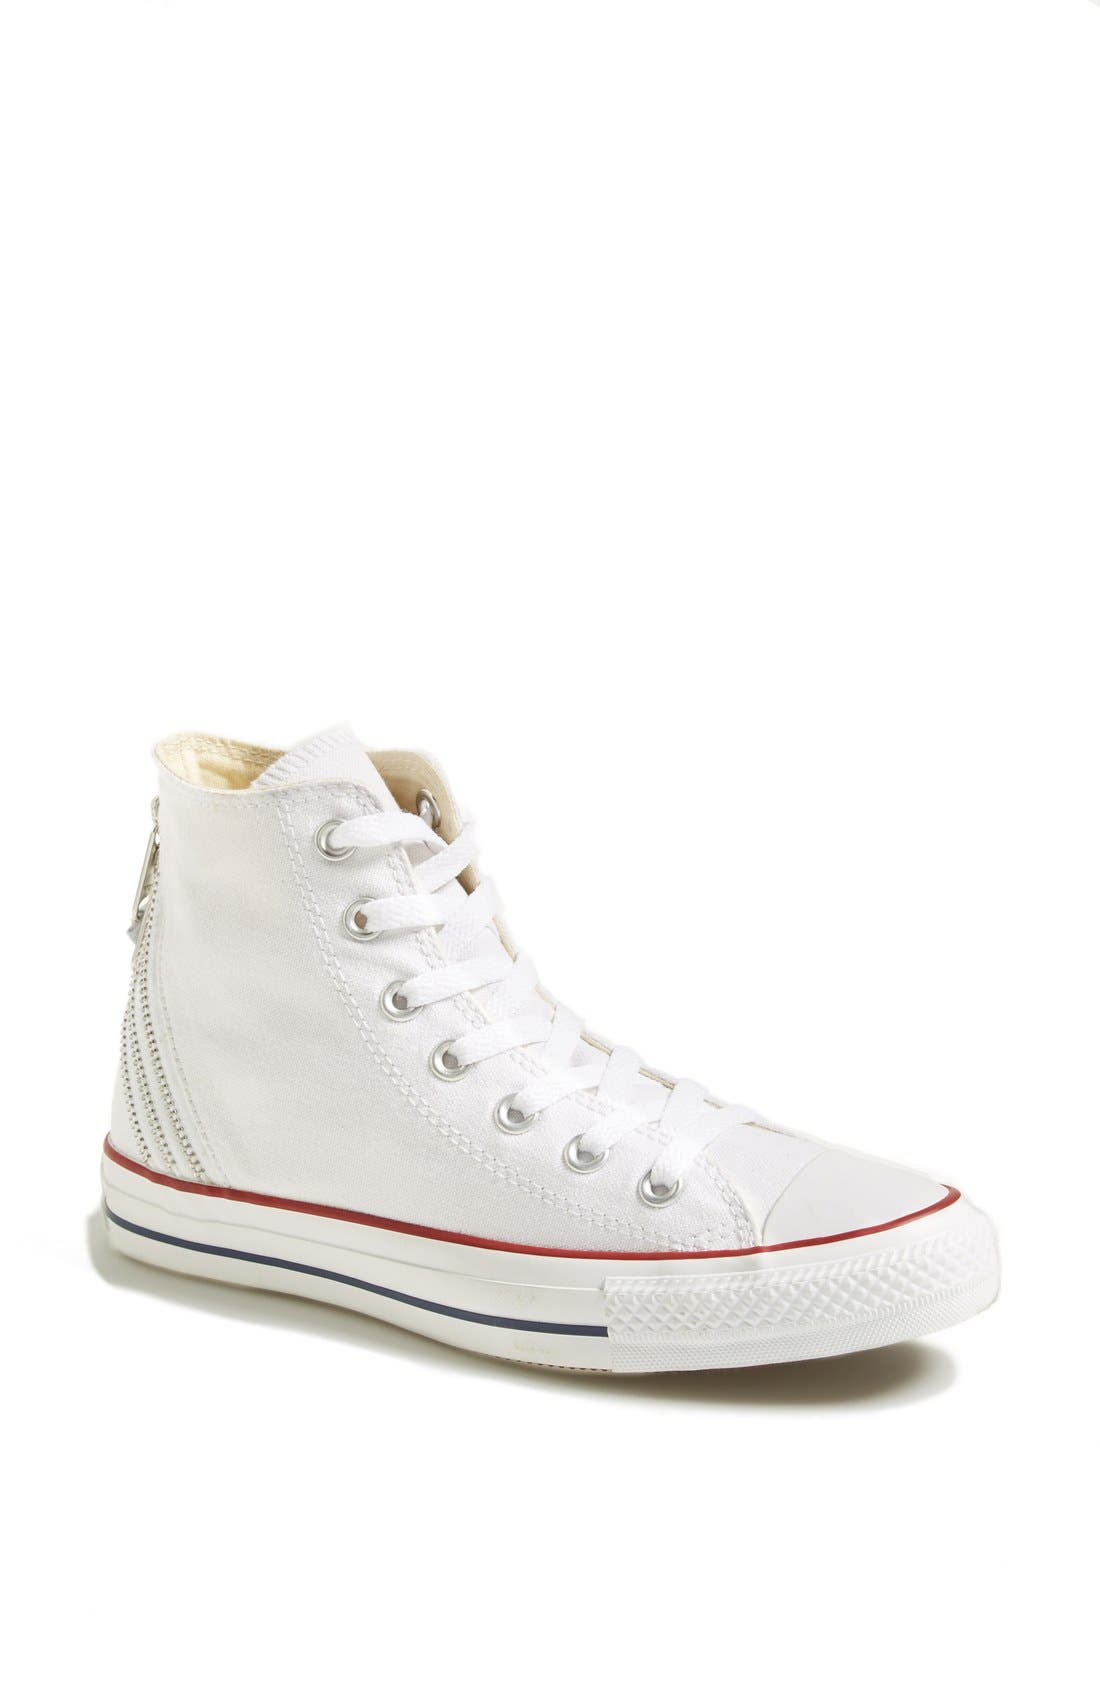 Main Image - Converse Chuck Taylor® All Star® Triple Zip Canvas Sneaker (Women)